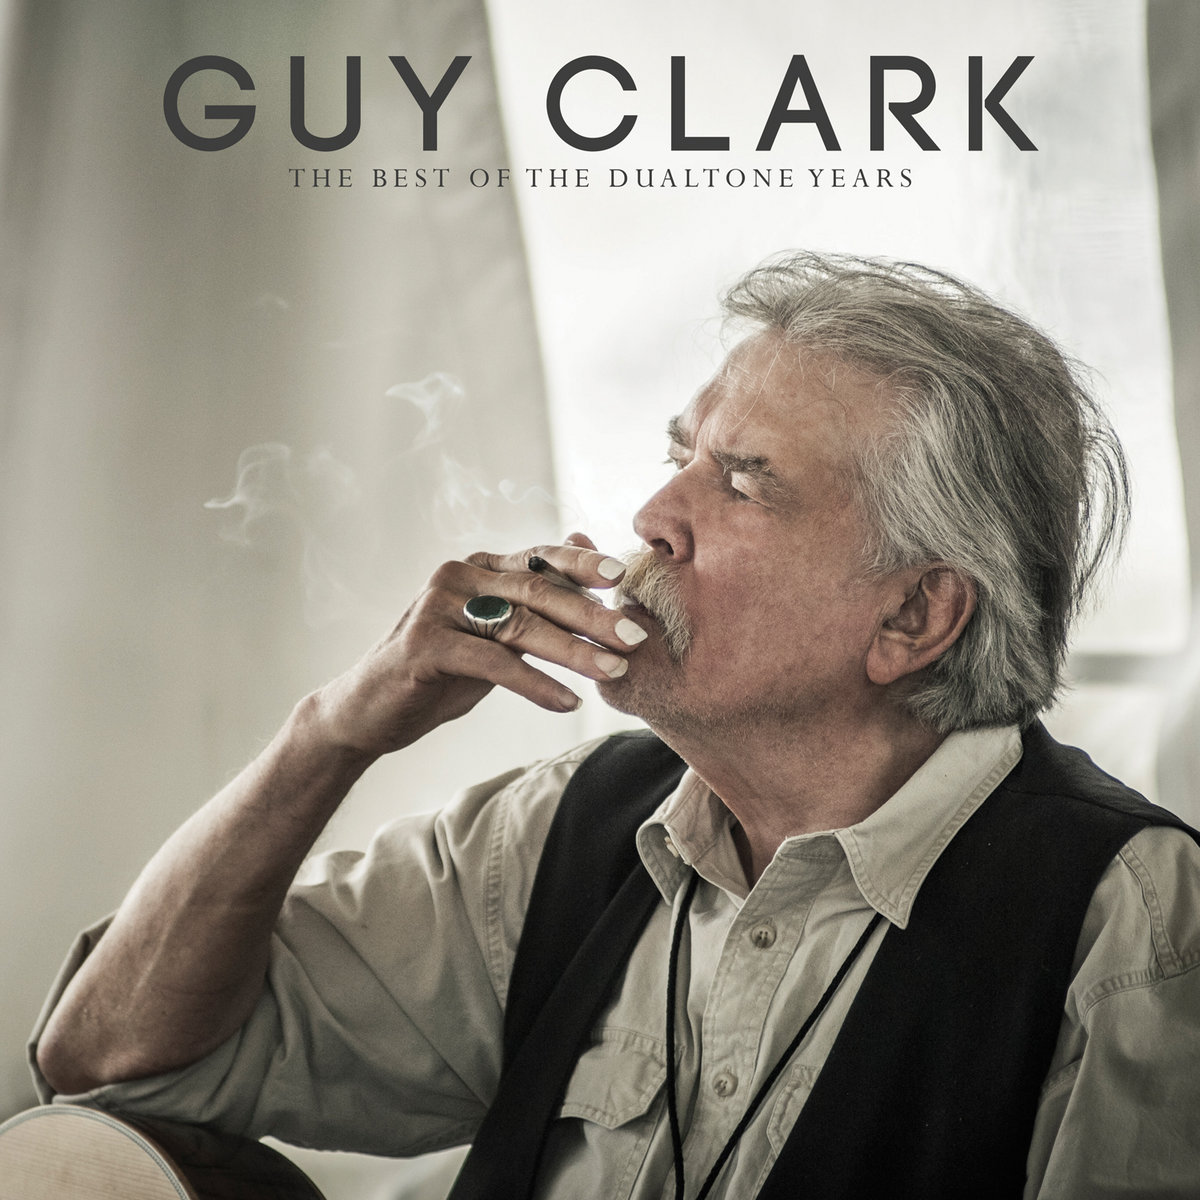 Image result for guy clark the best of the dualtone years